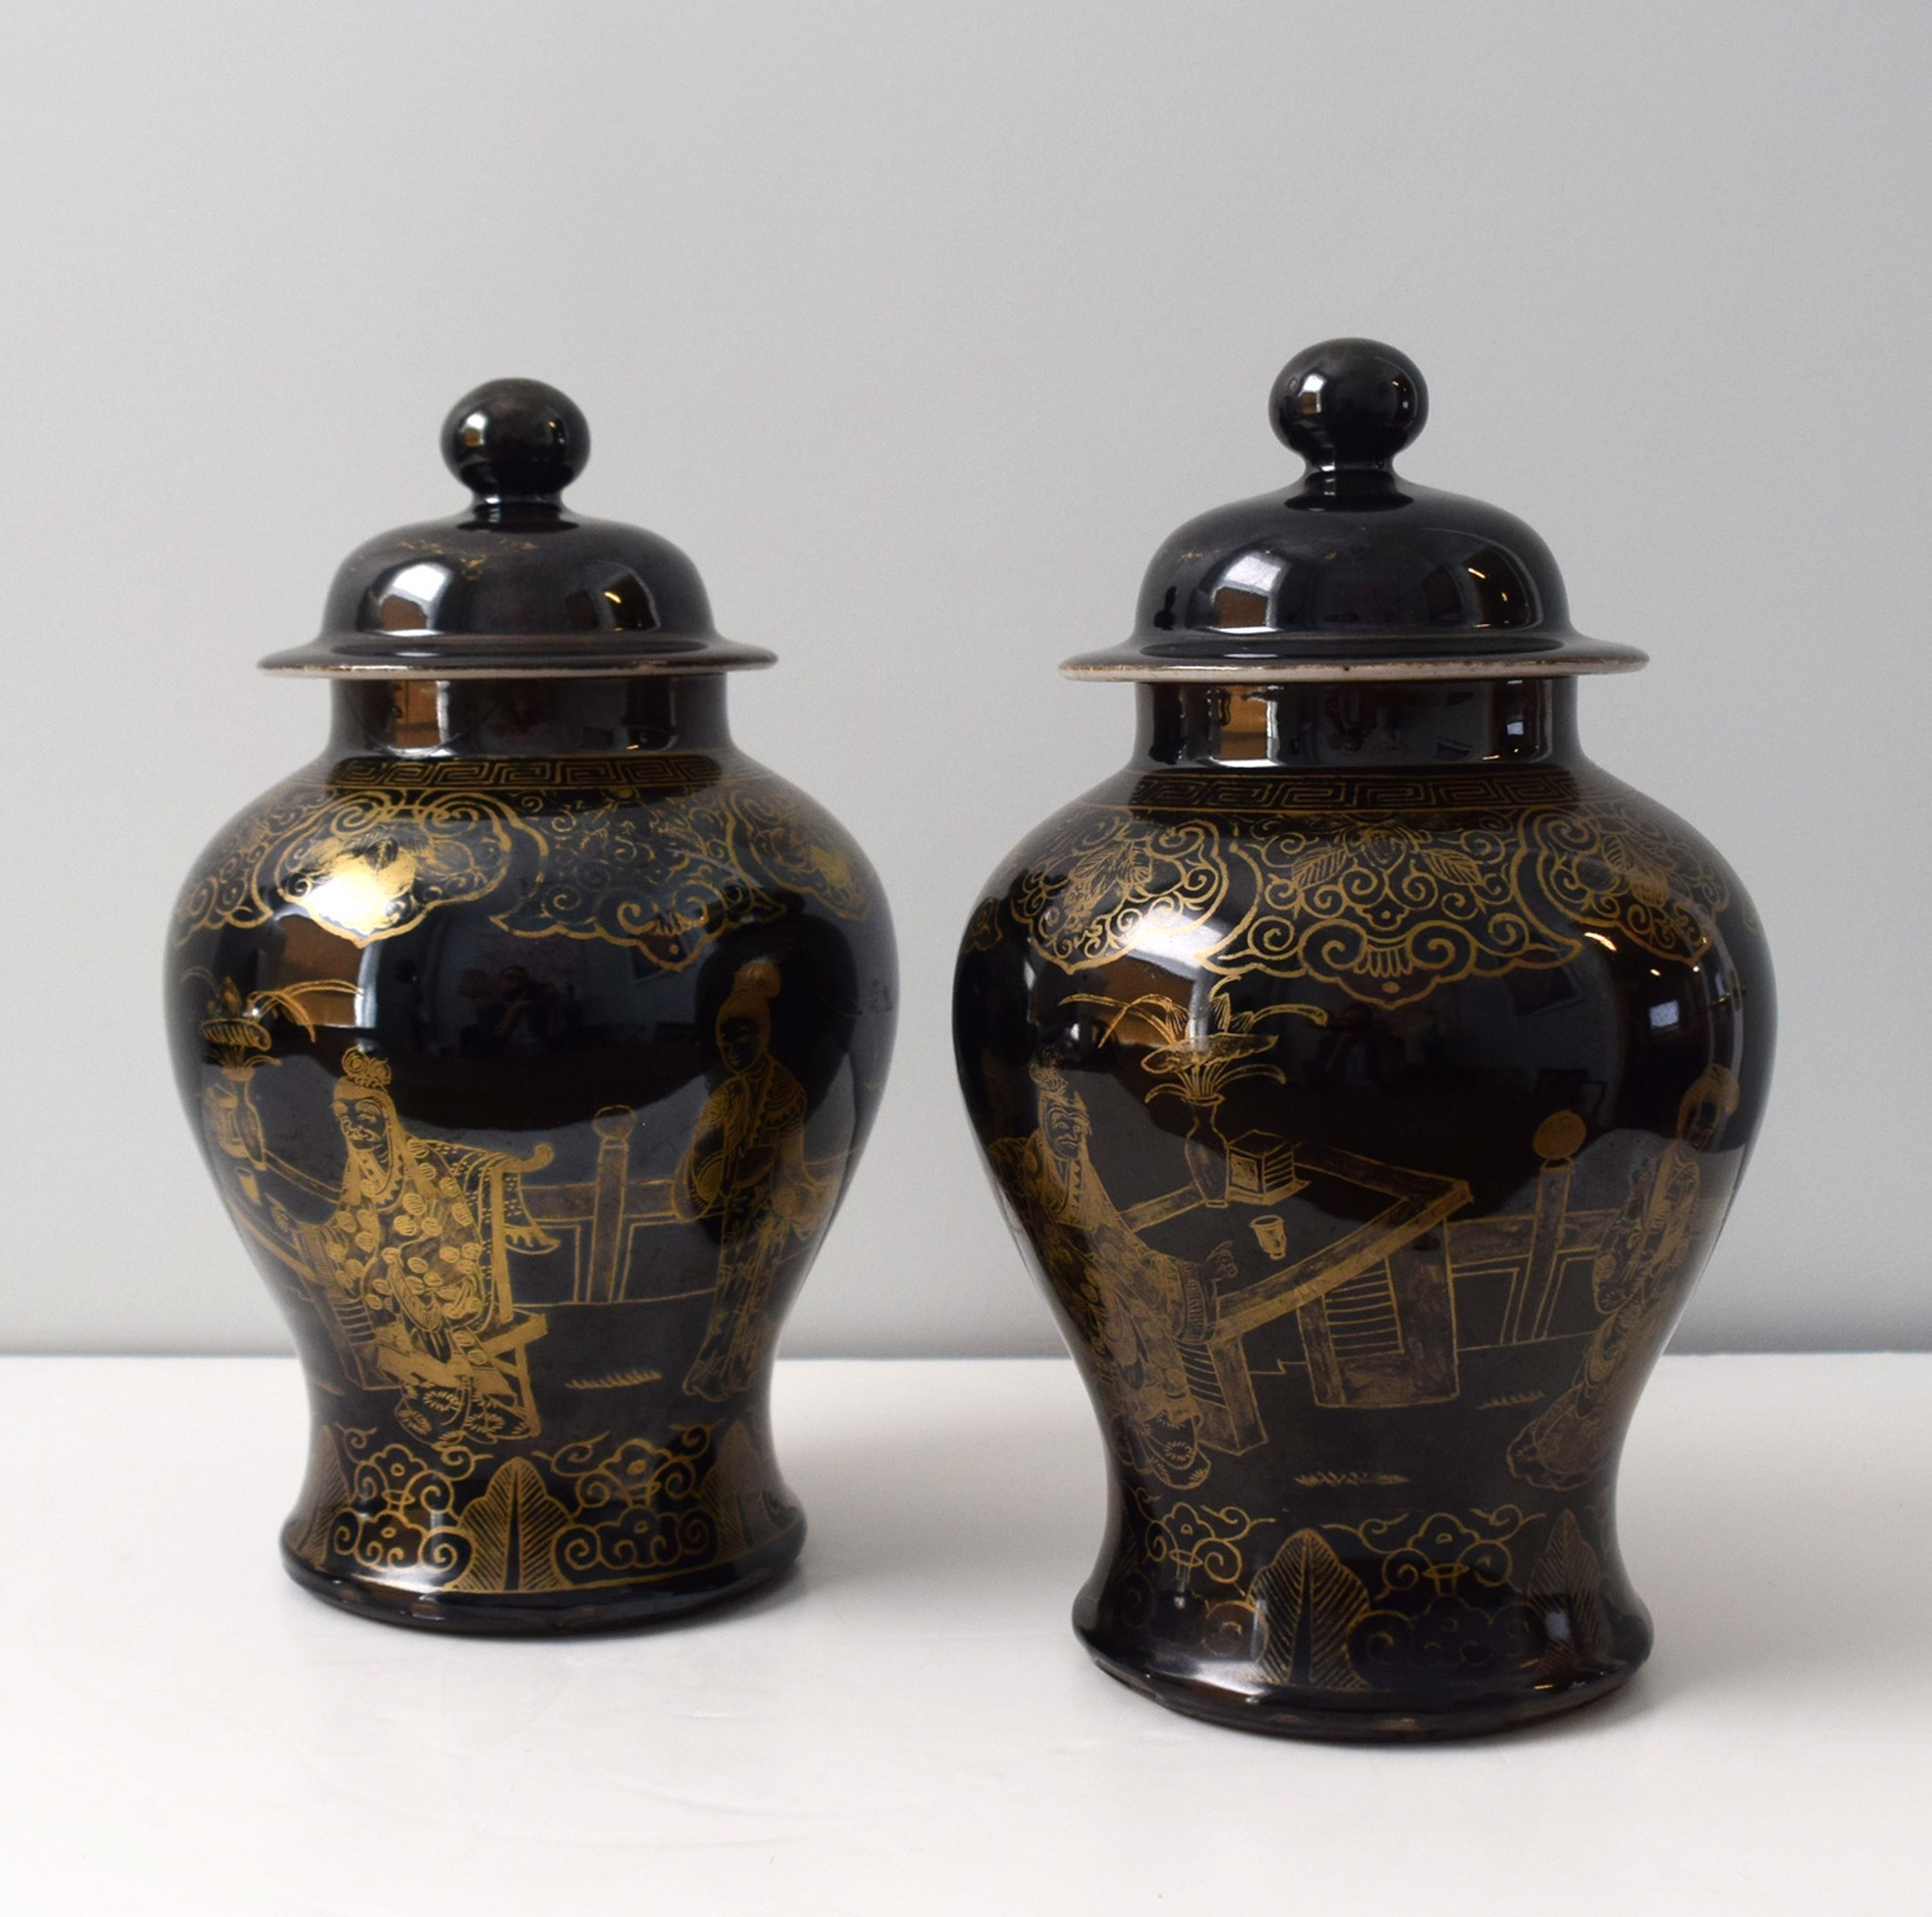 PAIR OF BLACK GROUND AND GILT BALUSTER JARS AND COVERS WITH FIGURES